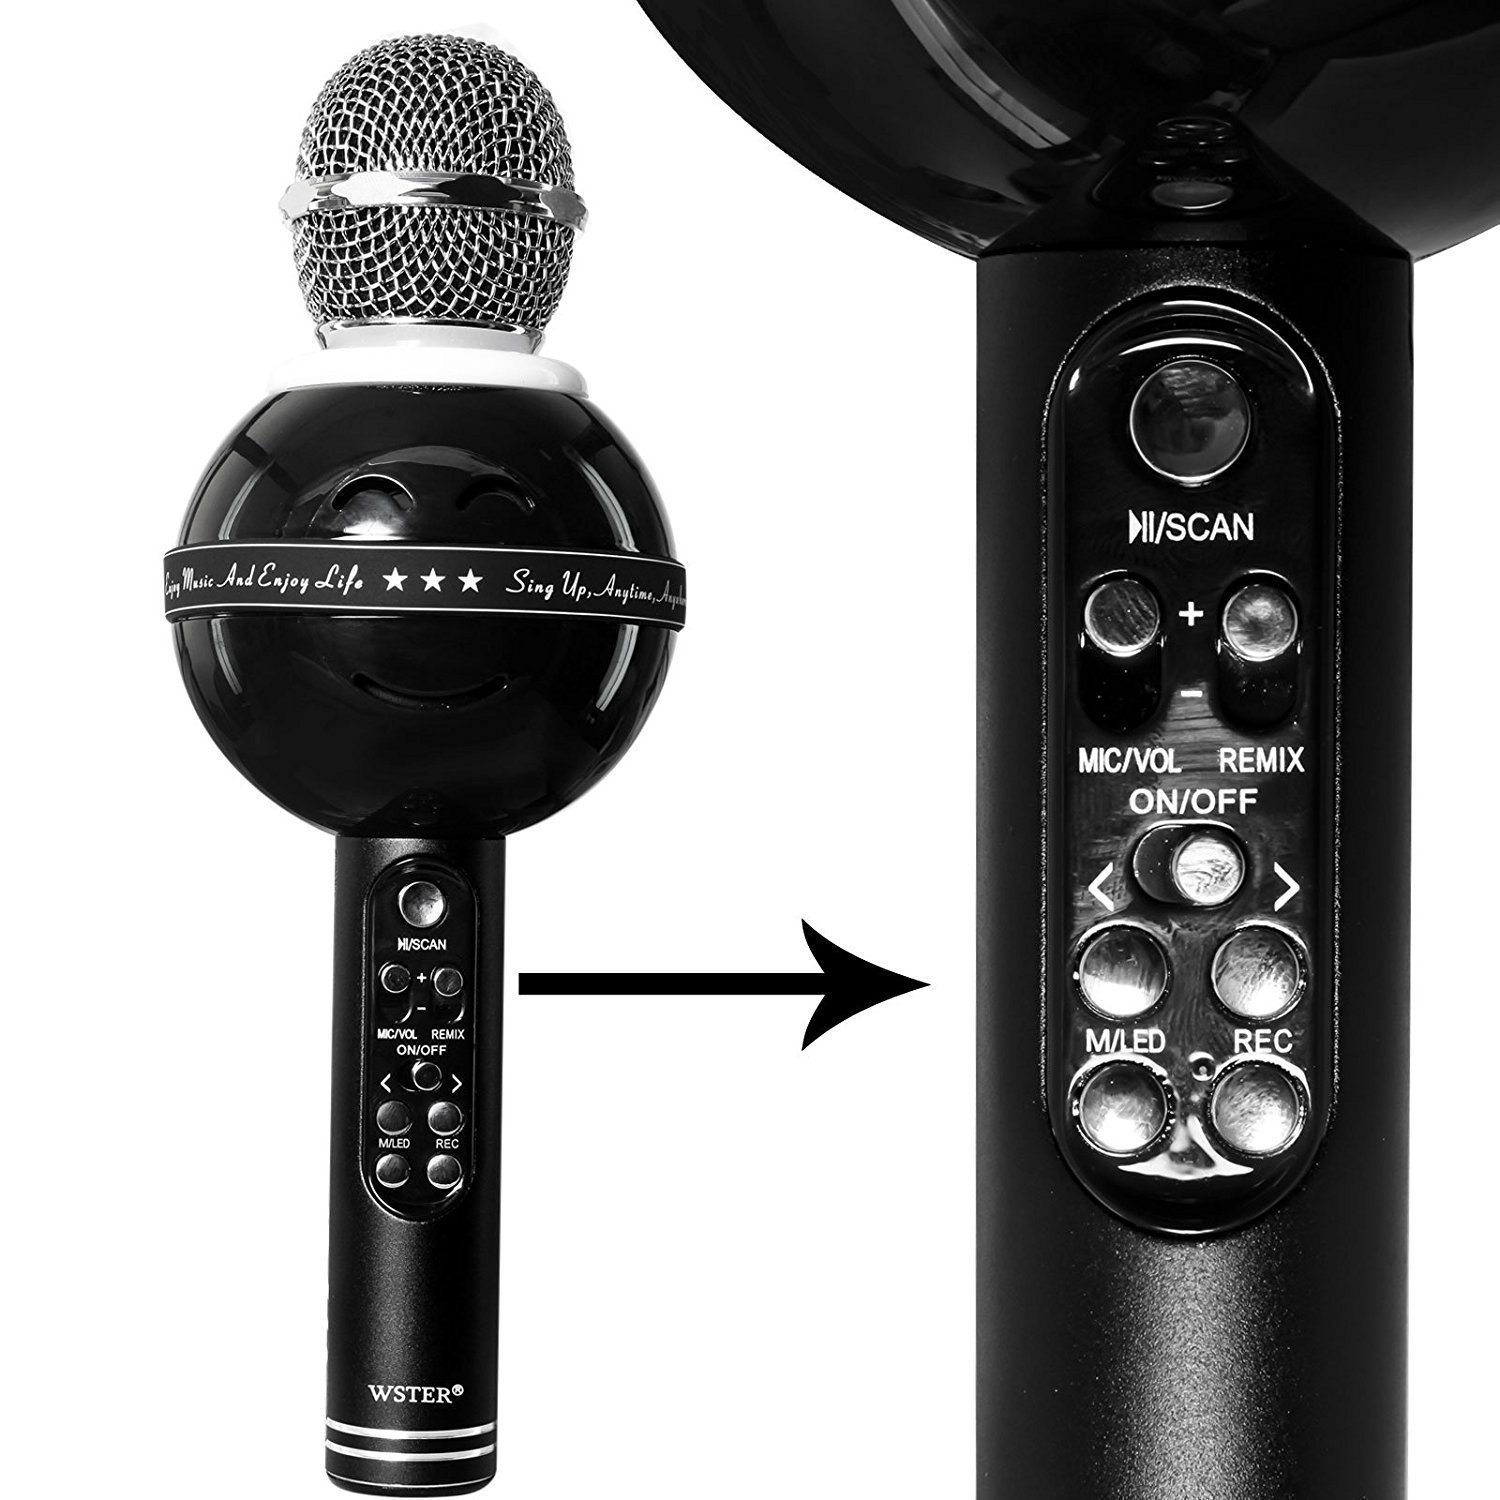 Kartik Wireless Bluetooth Ws 878 Karaoke Mic For Singing Recording Wster 858 Smule Condenser Handheld Portable Speaker With Lights Assorted Colour Musical